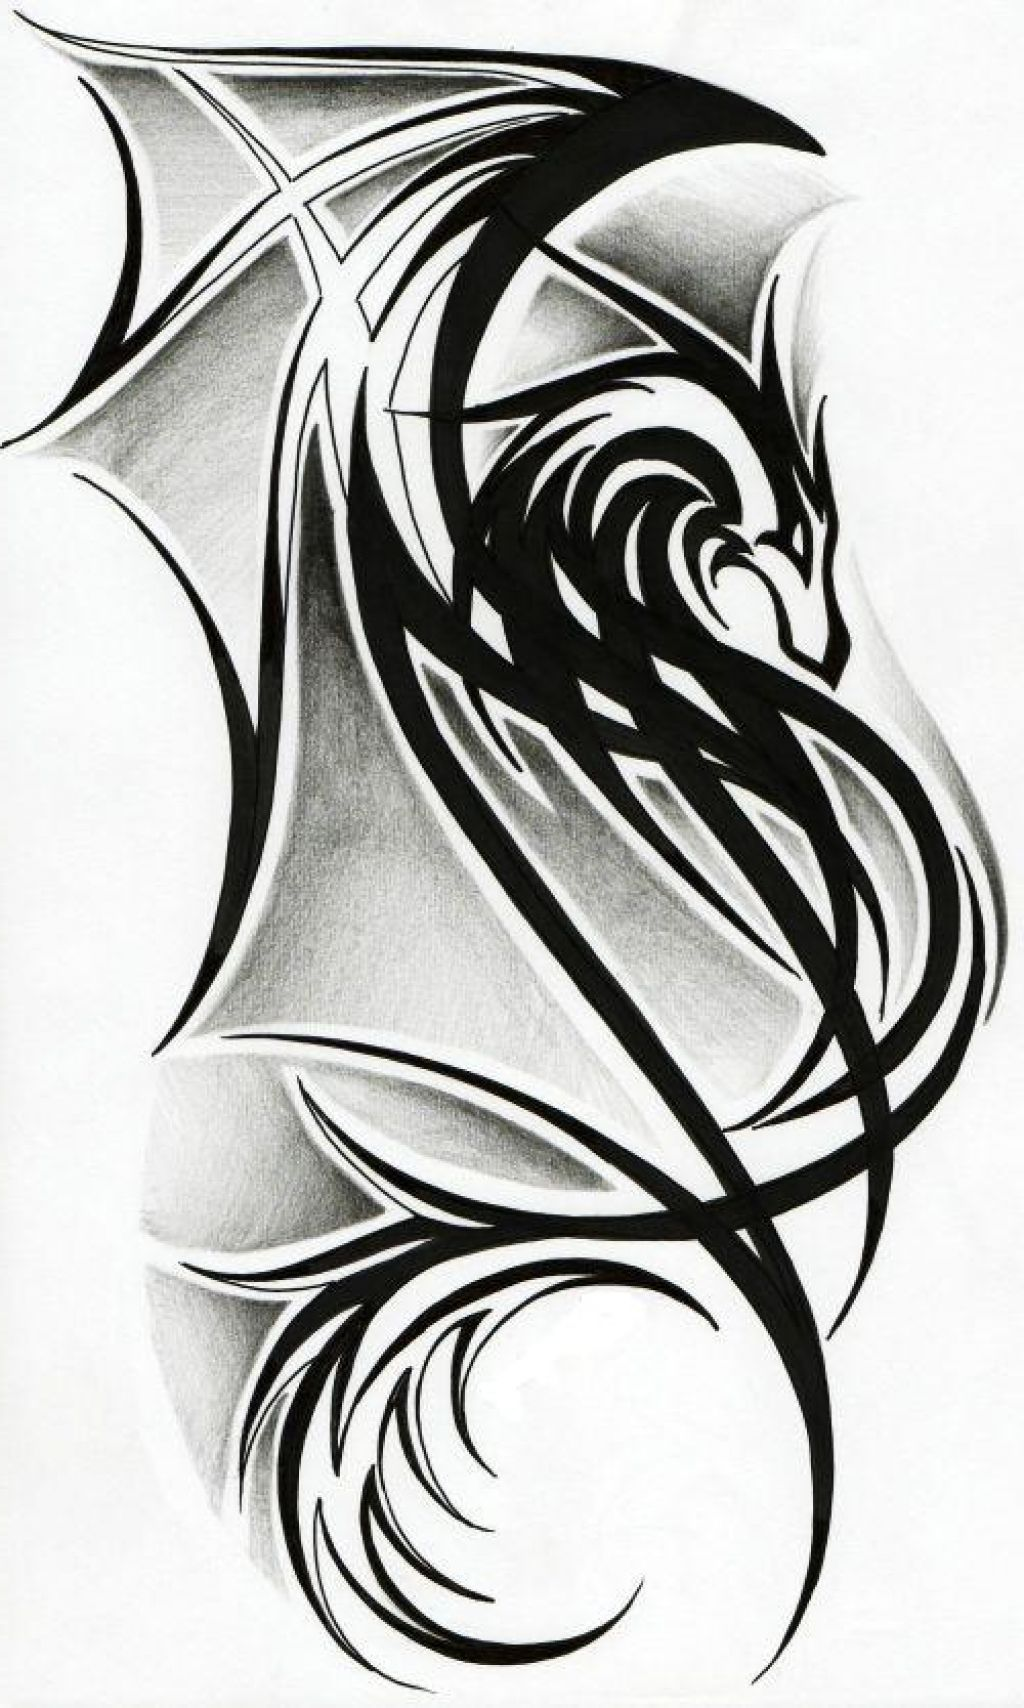 Tattoo design picture - Tribal Dragon Tattoo Designs Best Tattoo Art Design